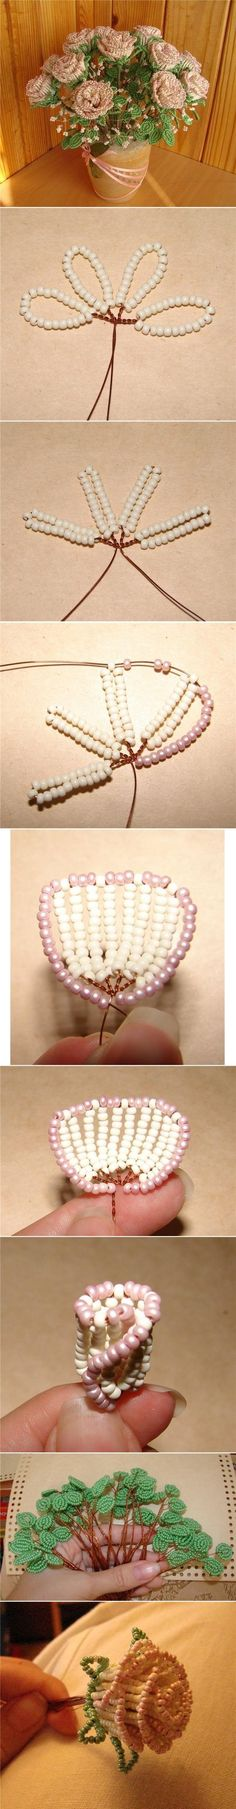 "<input+type=""hidden""+value=""""+data-frizzlyPostContainer=""""+data-frizzlyPostUrl=""http://www.usefuldiy.com/diy-bead-roses-bouquet/""+data-frizzlyPostTitle=""DIY+Bead+Roses+Bouquet""+data-frizzlyHoverContainer=""""><p>>>>+Craft+Tutorials+More+Free+Instructions+Free+Tutorials+More+Craft+Tutorials</p>"